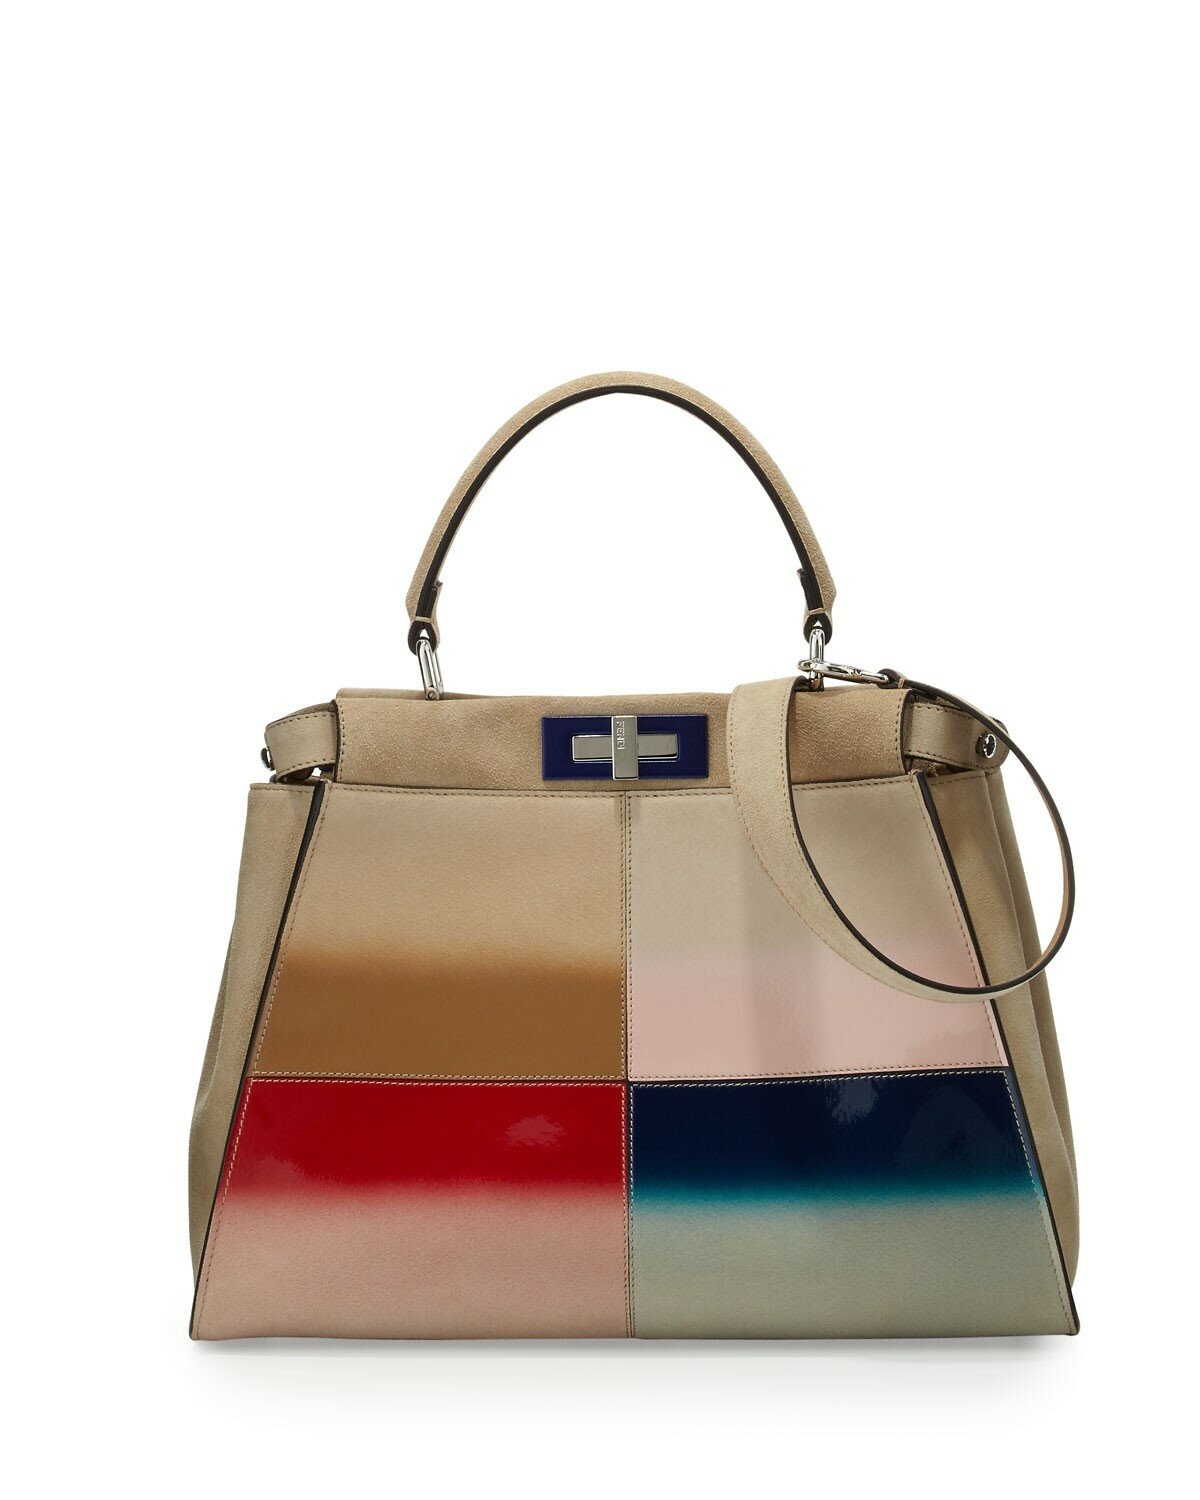 Fendi peekaboo medium gradient patchwork tote bag nude multi,100% authentic new york,discount shop usa